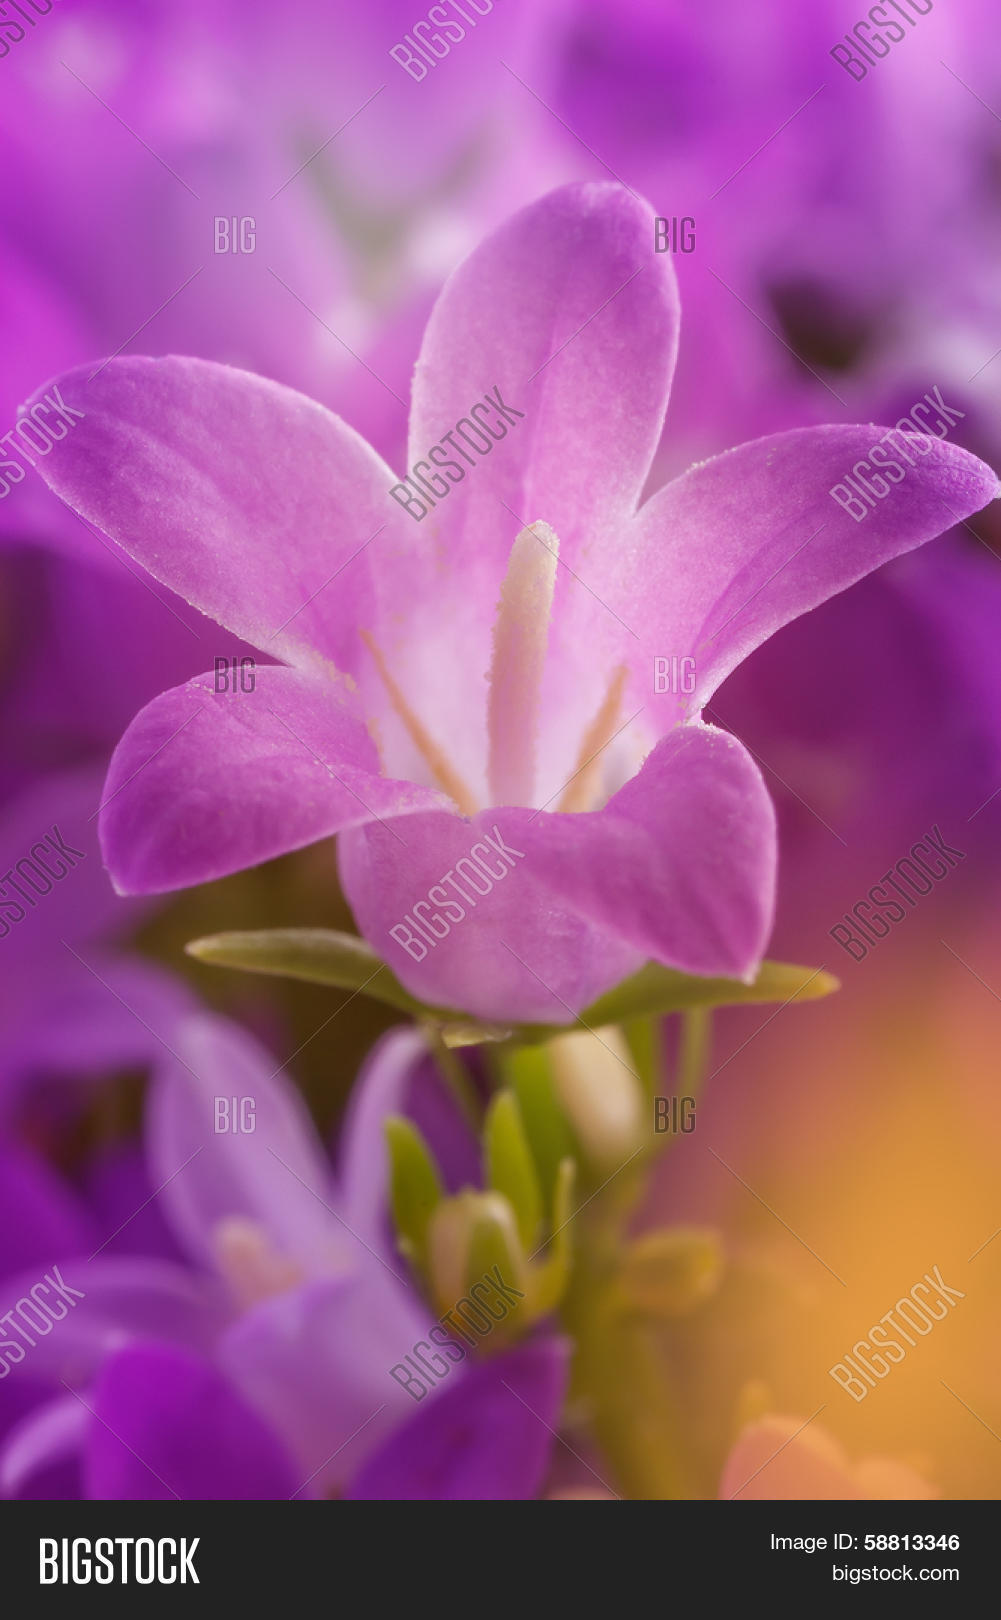 Lila Flower Details Image Photo Free Trial Bigstock